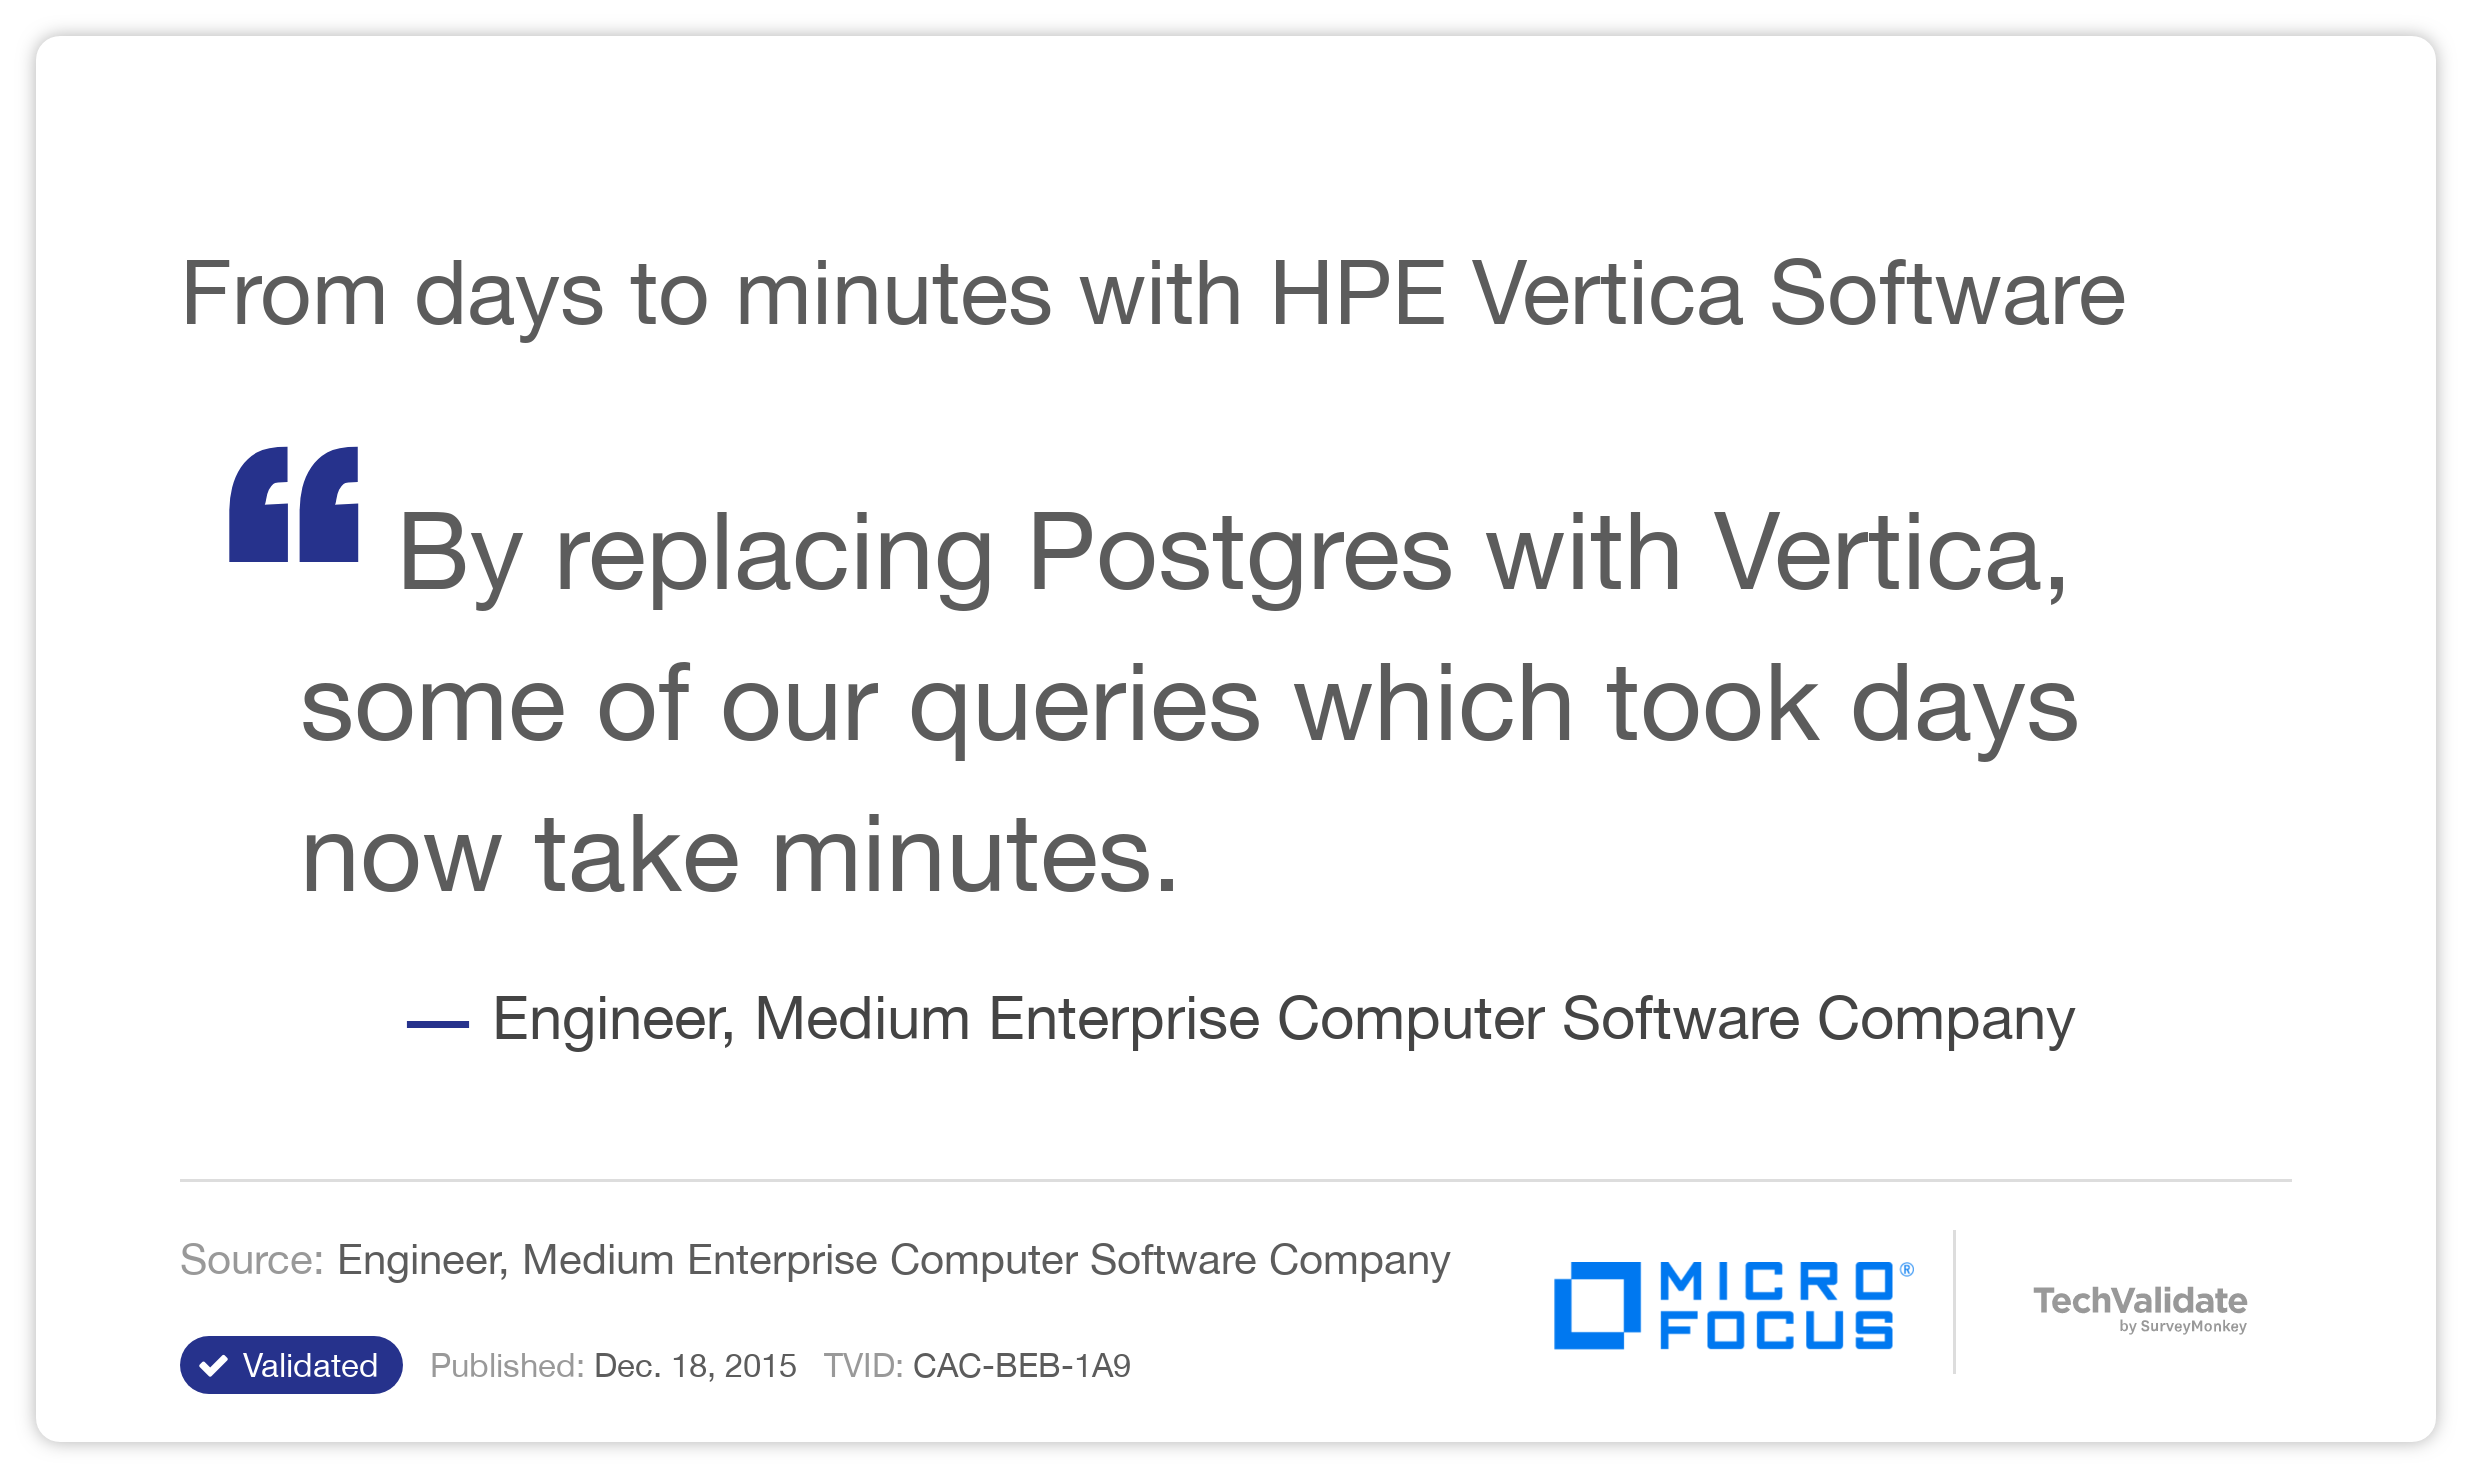 From days to minutes with HPE Vertica Software